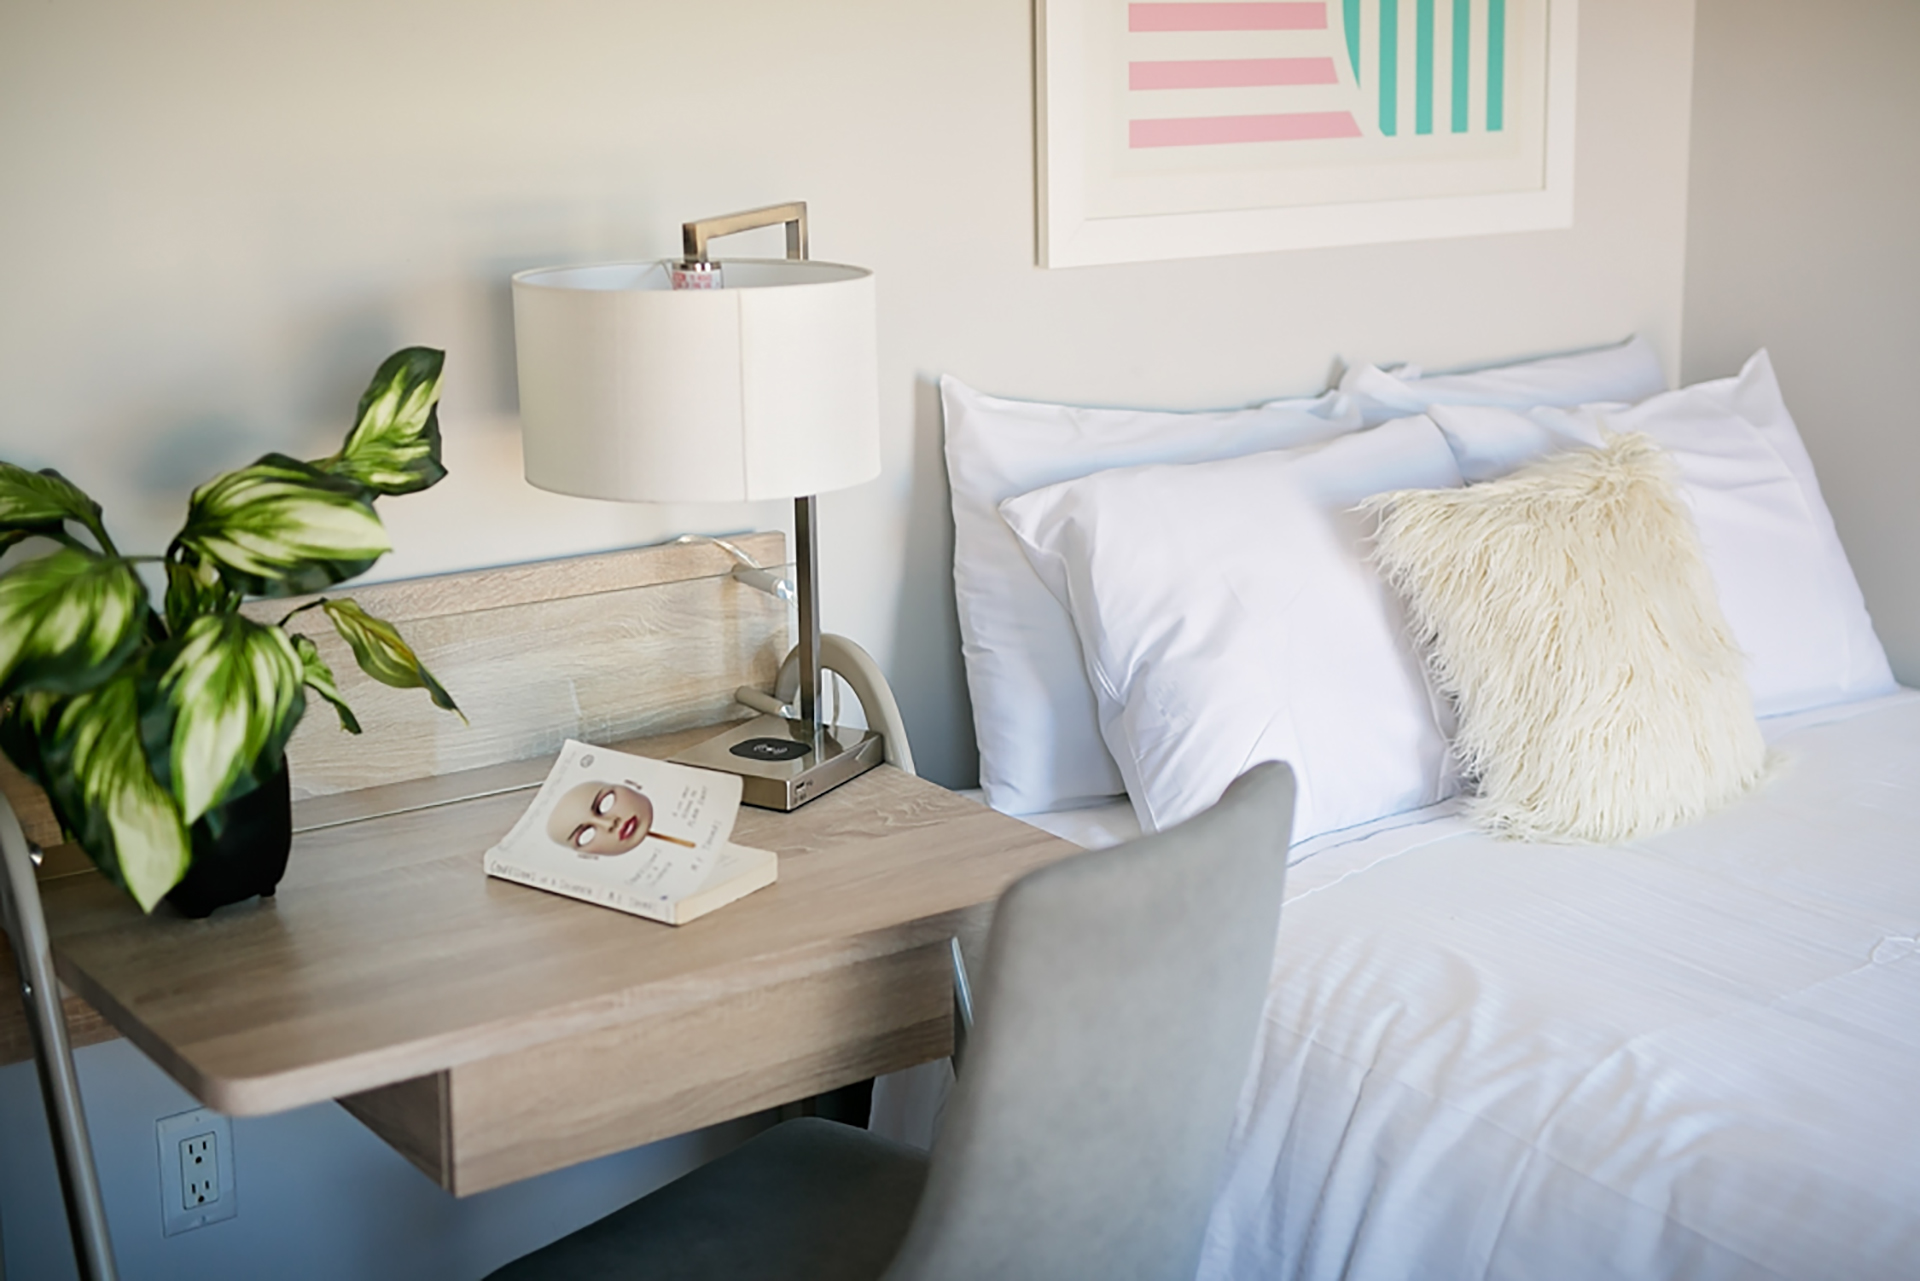 Roomrs - Curated Co-living in NYC